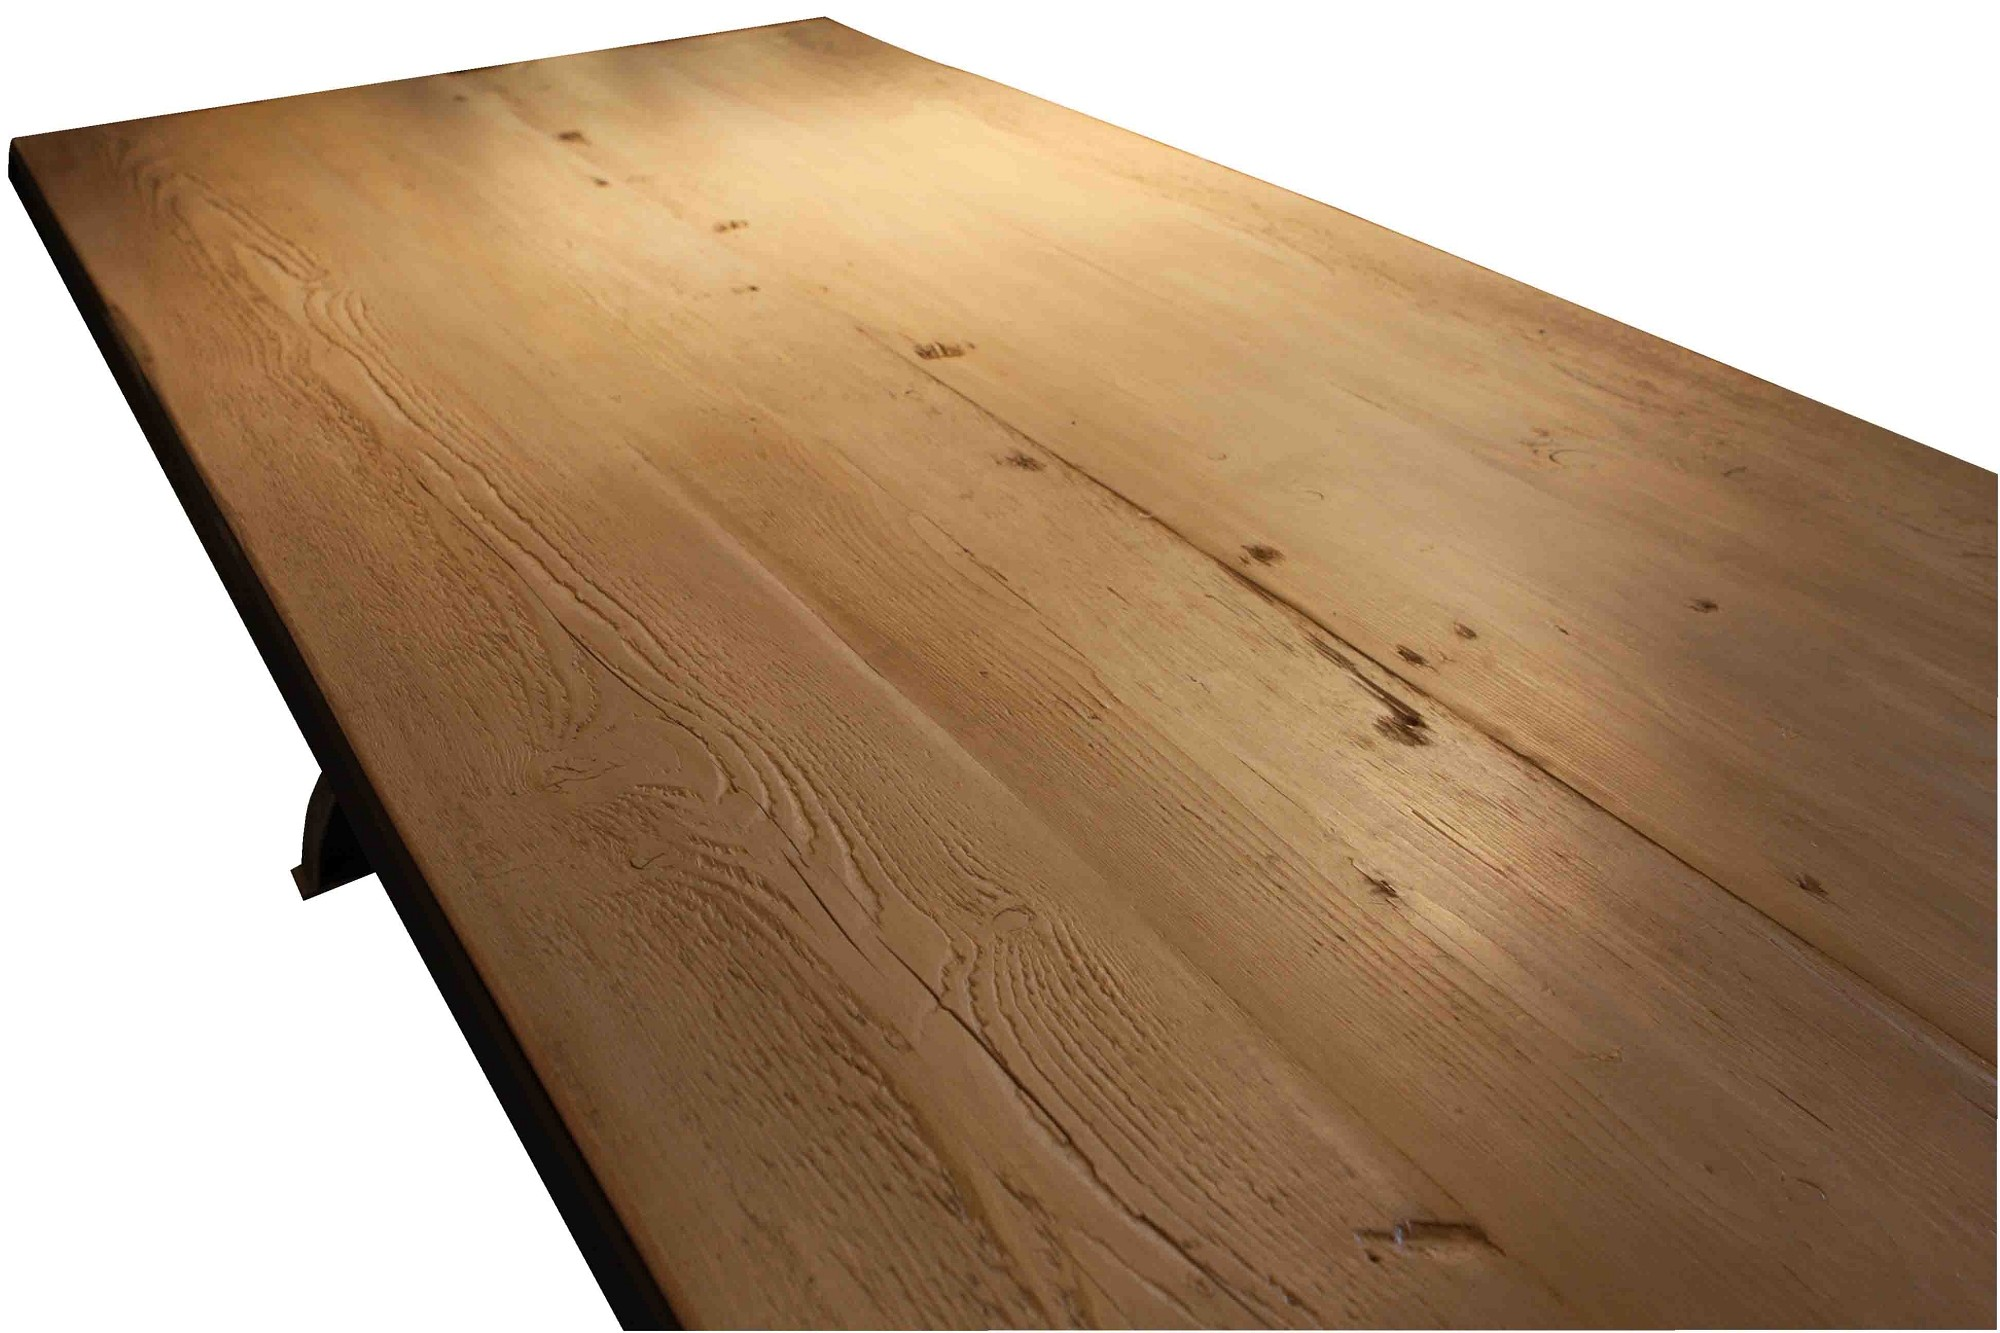 table top background hd. 2000x1333 (670x334 px) dining table#4 of wood table top blanks . background hd e